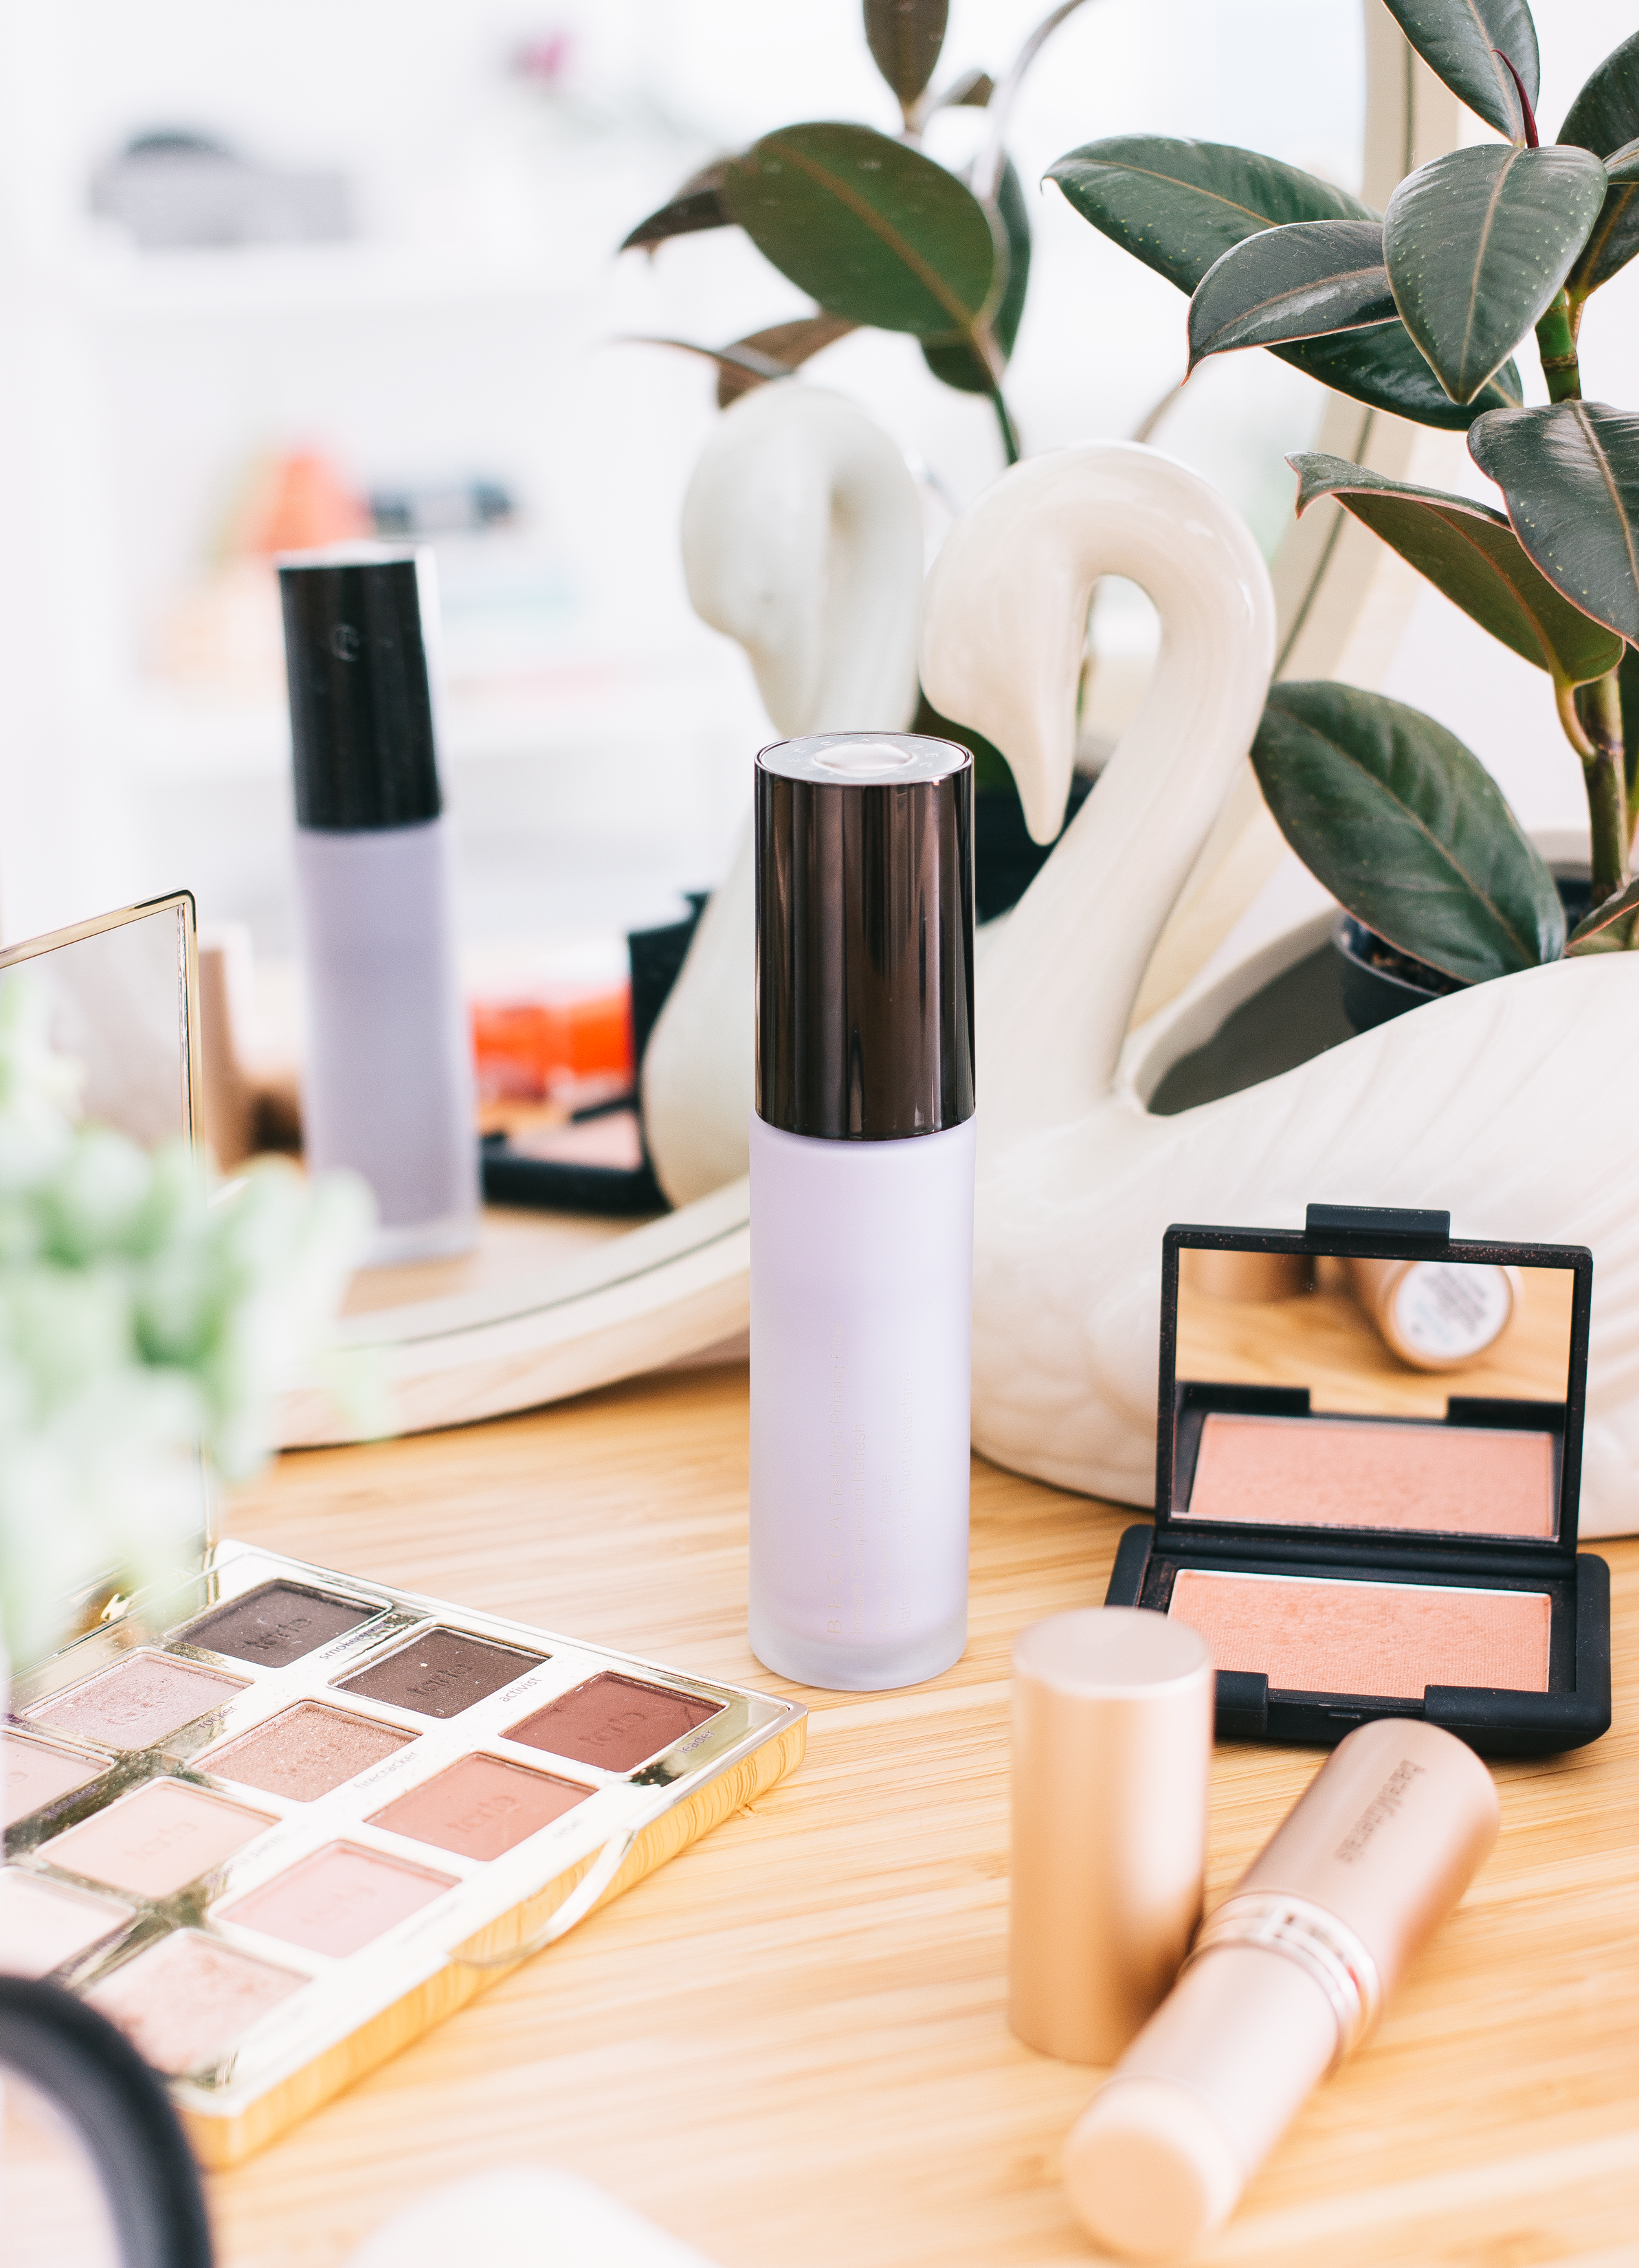 becca first light priming filter (gifted) - I'd not used this primer in a while as I'd been opting for more hydrating options instead and honestly, I'd forgot how lovely this is. The lilac tone aims to add luminosity and light to the skin without the need for anything too shimmery and it really does add a beautiful soft luminous hue to my complexion. It's almost like when you've got applied a rich moisturiser but obviously without the huge moisture boost as I'm not sure how well any makeup item would survive with that as a canvas. Not only does this perform wonderfully under any type of product but it also works well for a quick pick me up when you're going makeup free.